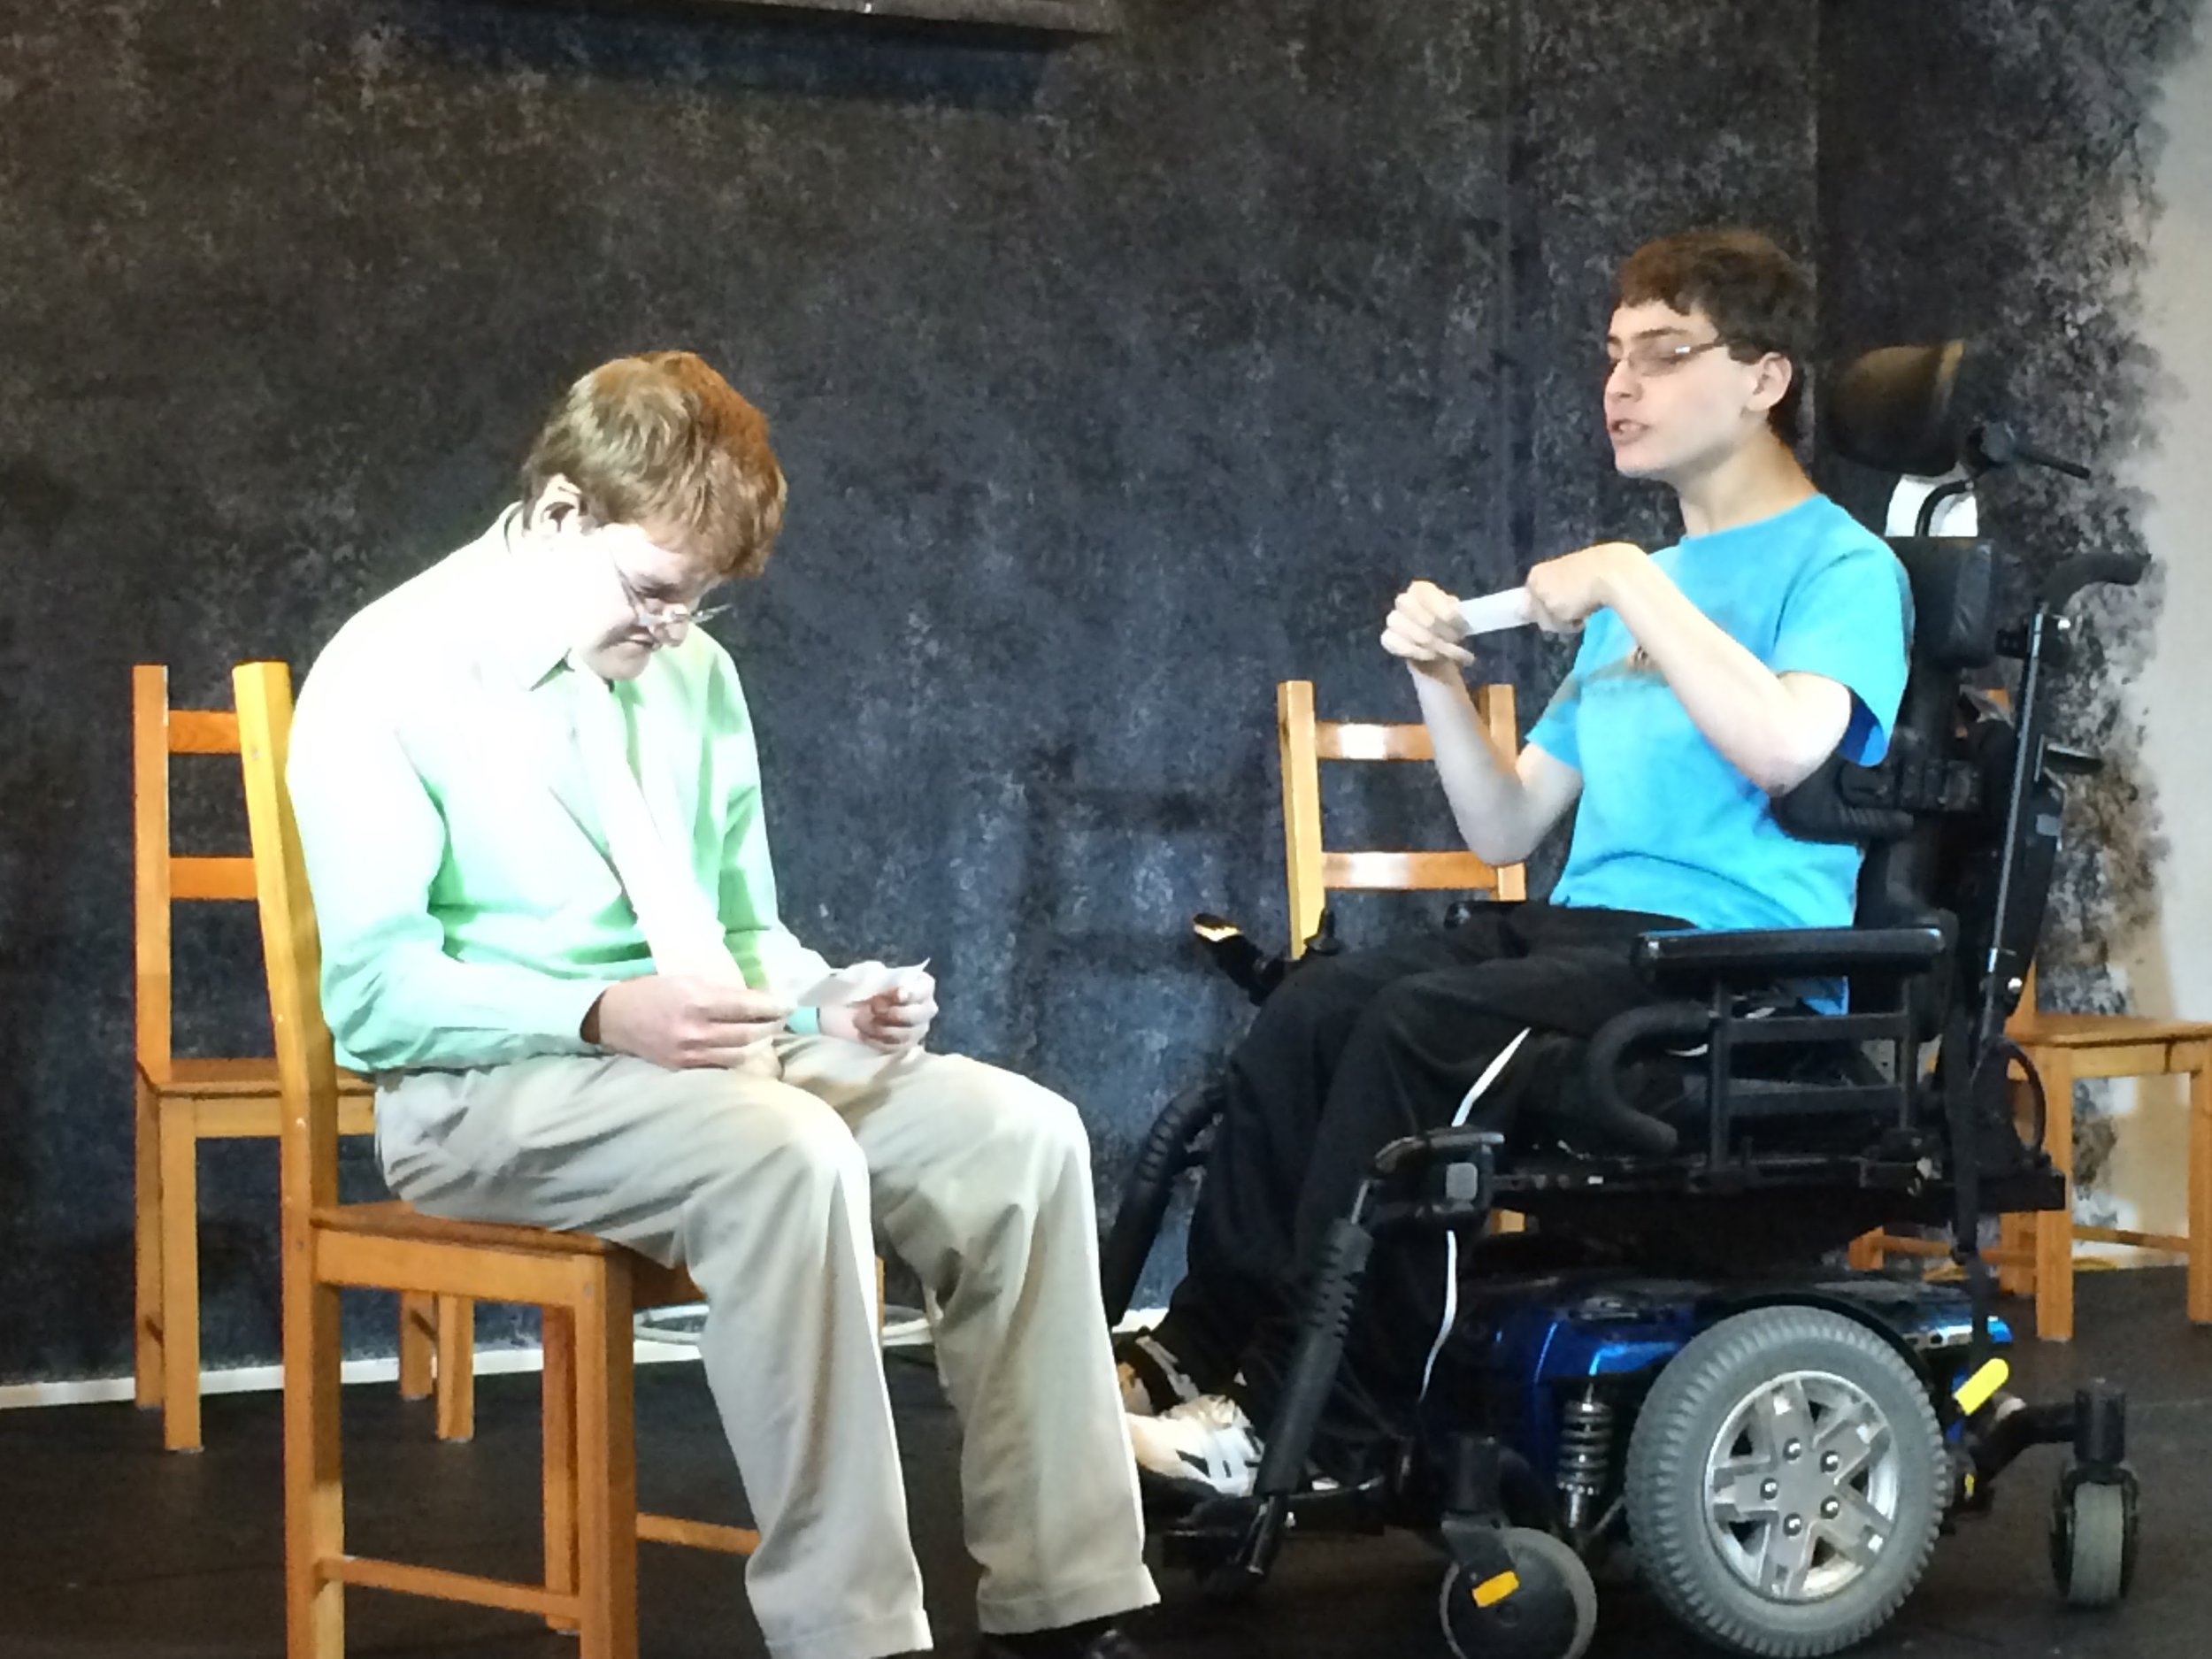 An acting class for people with disabilities.